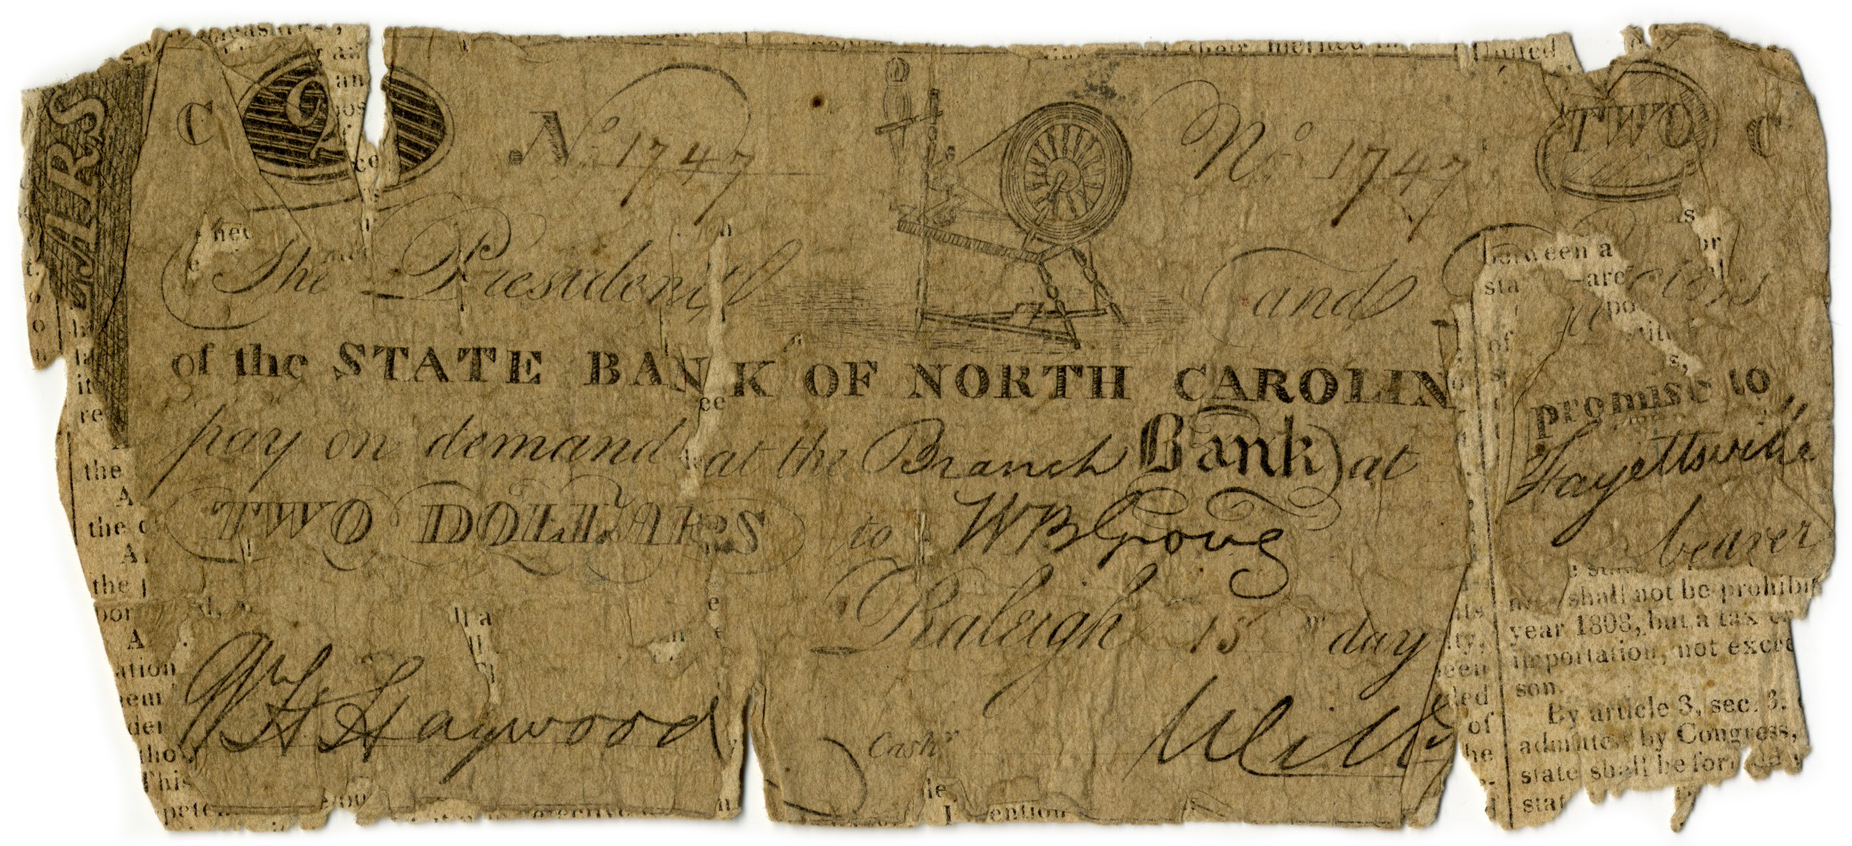 The State Bank of North Carolina $2, 1816 or 1817